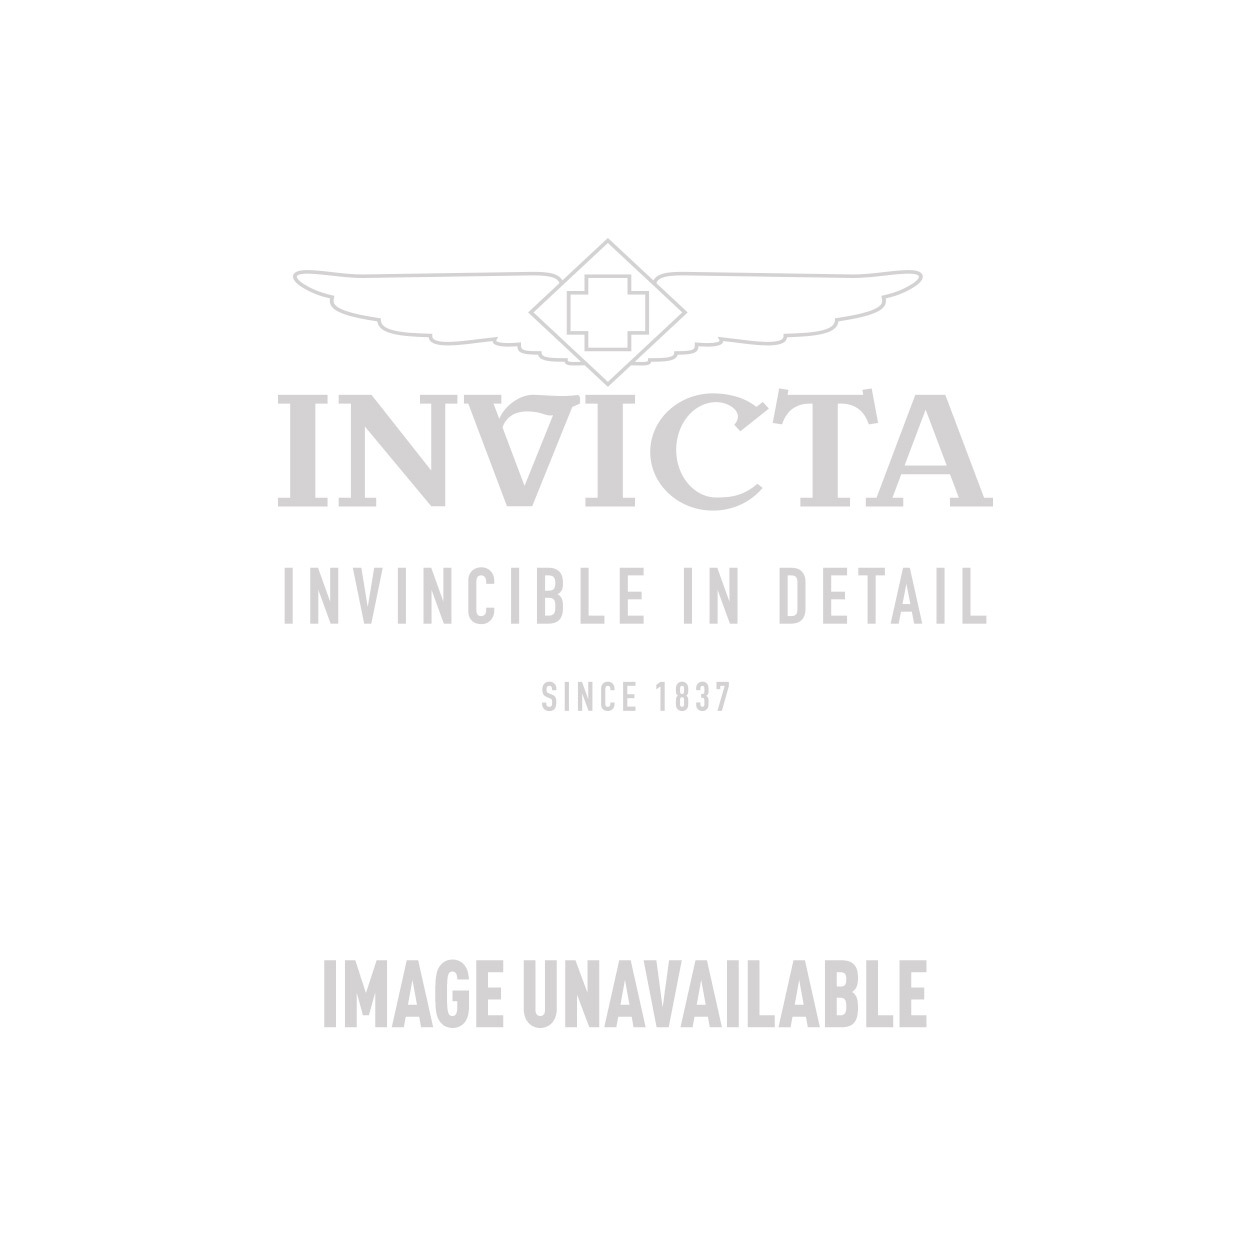 Invicta Venom Swiss Made Quartz Watch - Rose Gold, Stainless Steel case with Brown tone Leather band - Model 0359